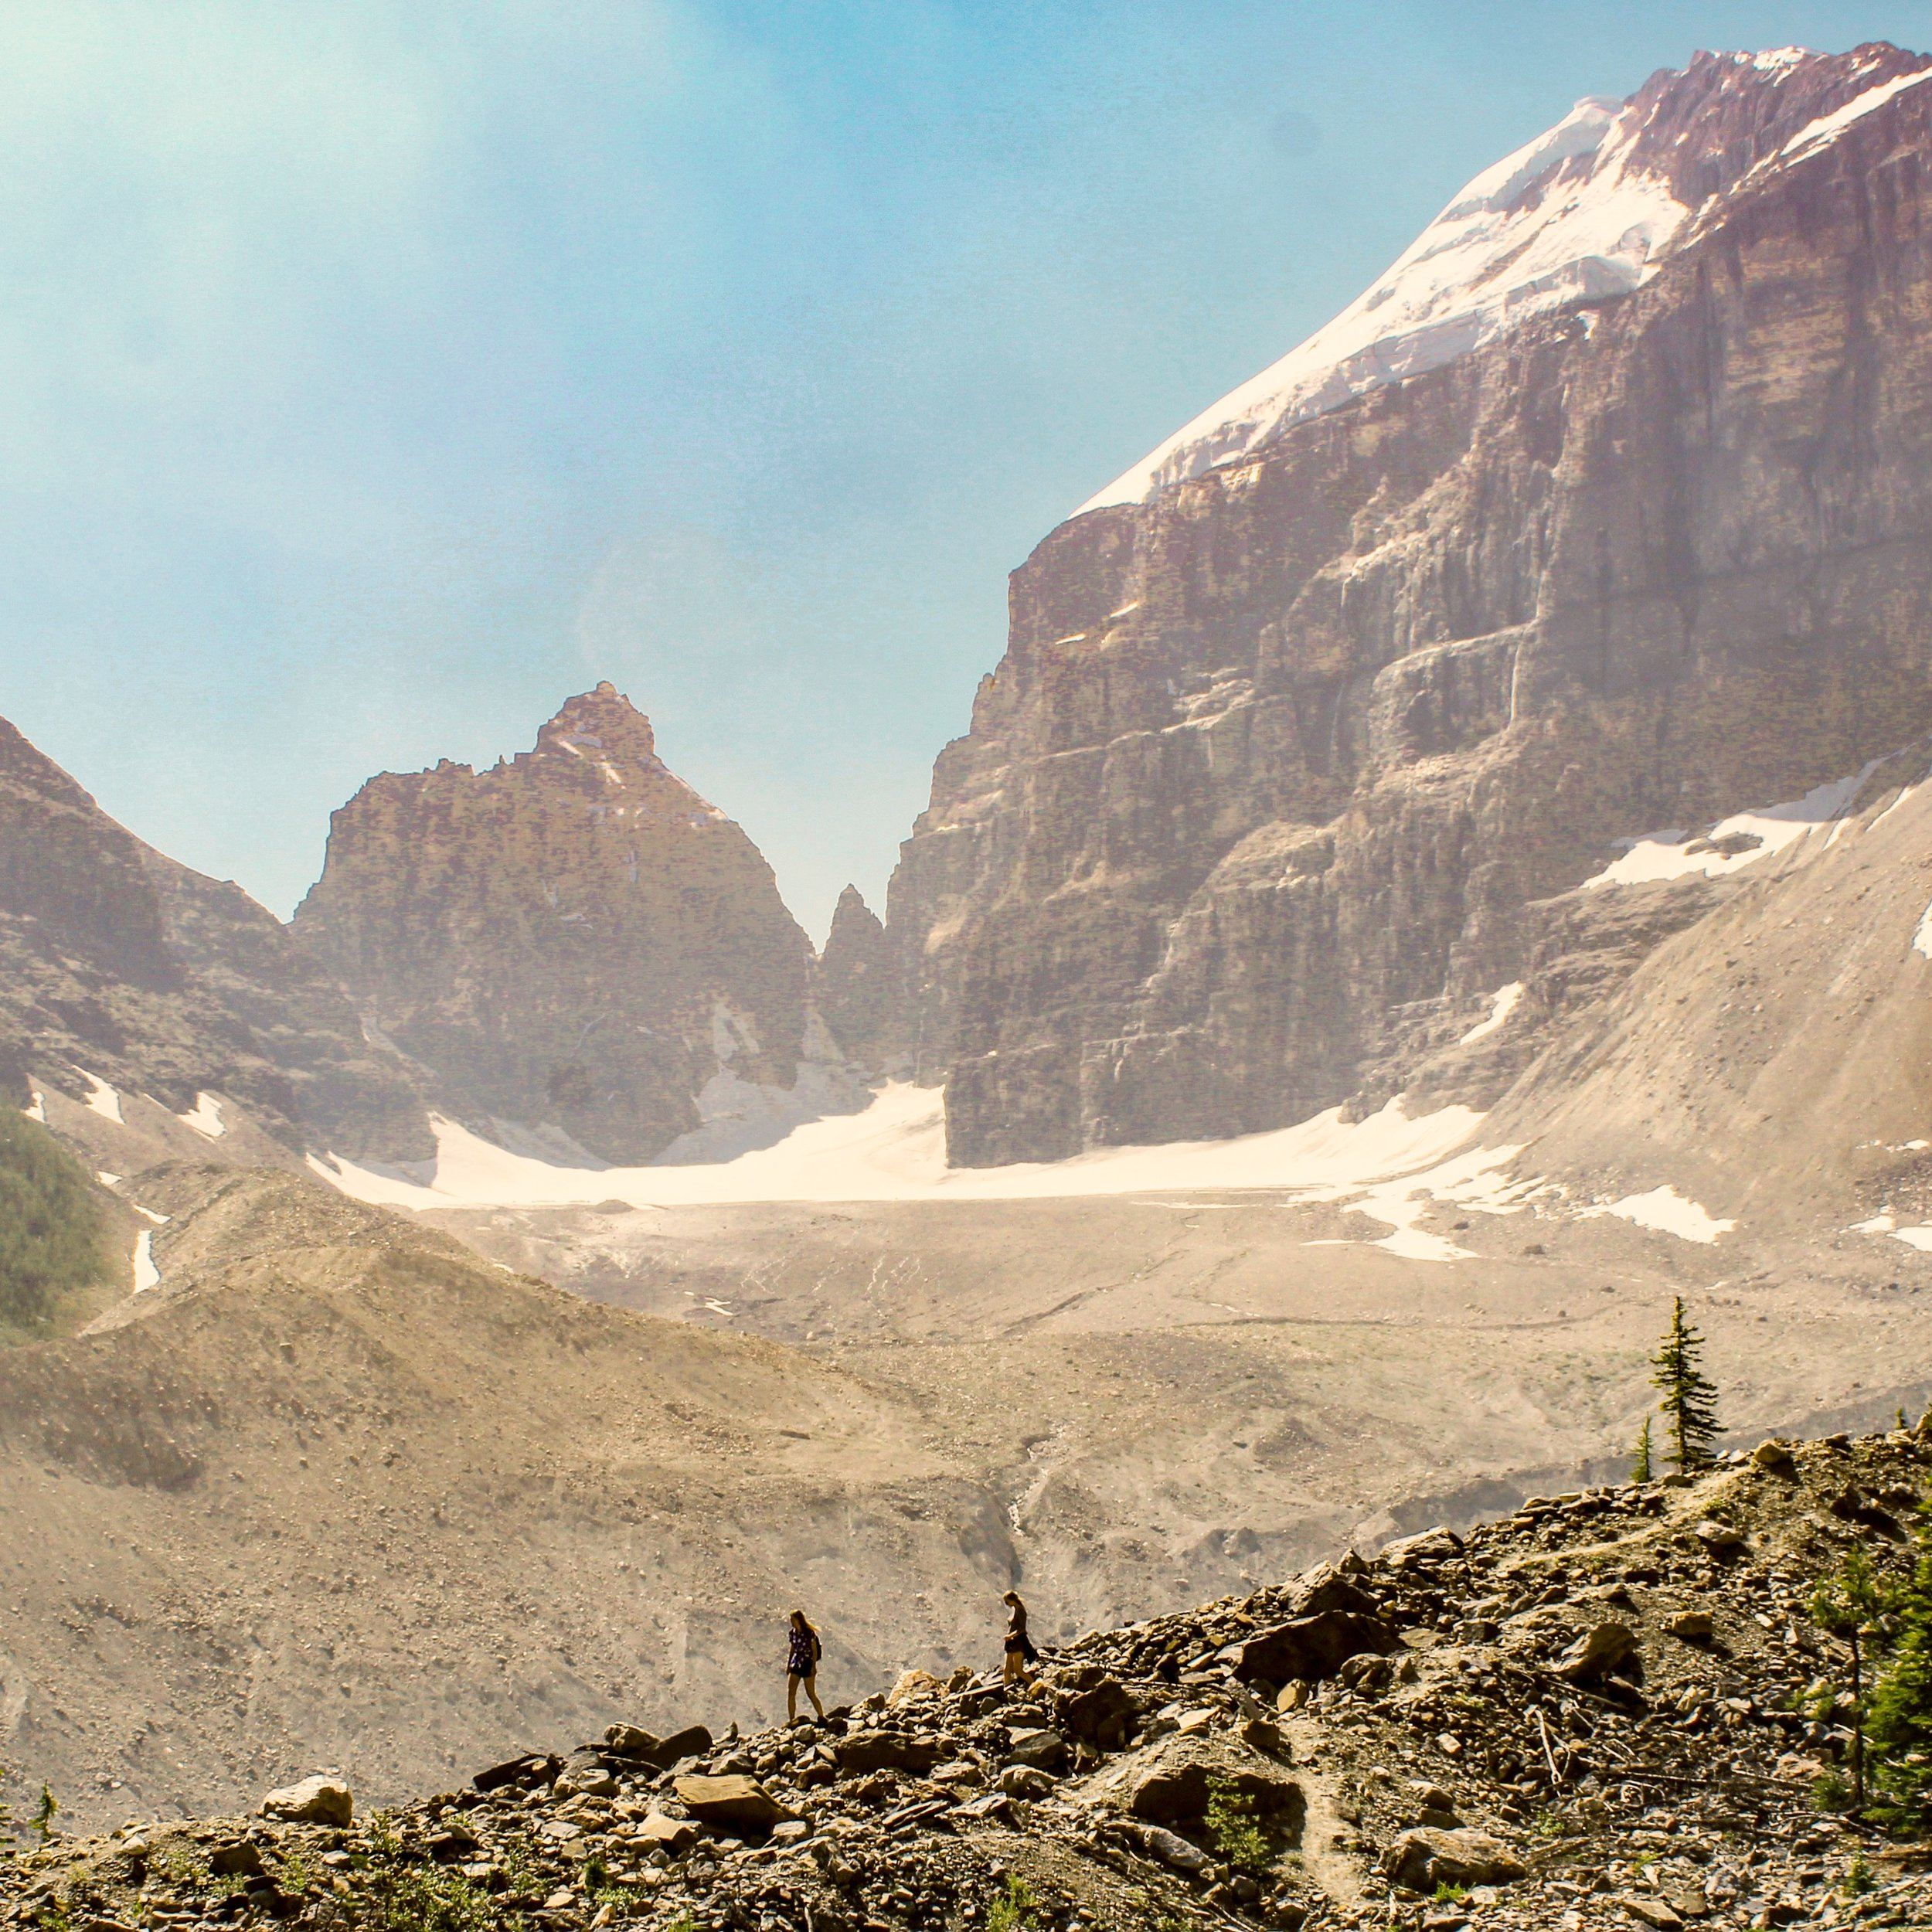 Hiking along the ridges below the epic mountains and glaciers of the Canadian Rockies